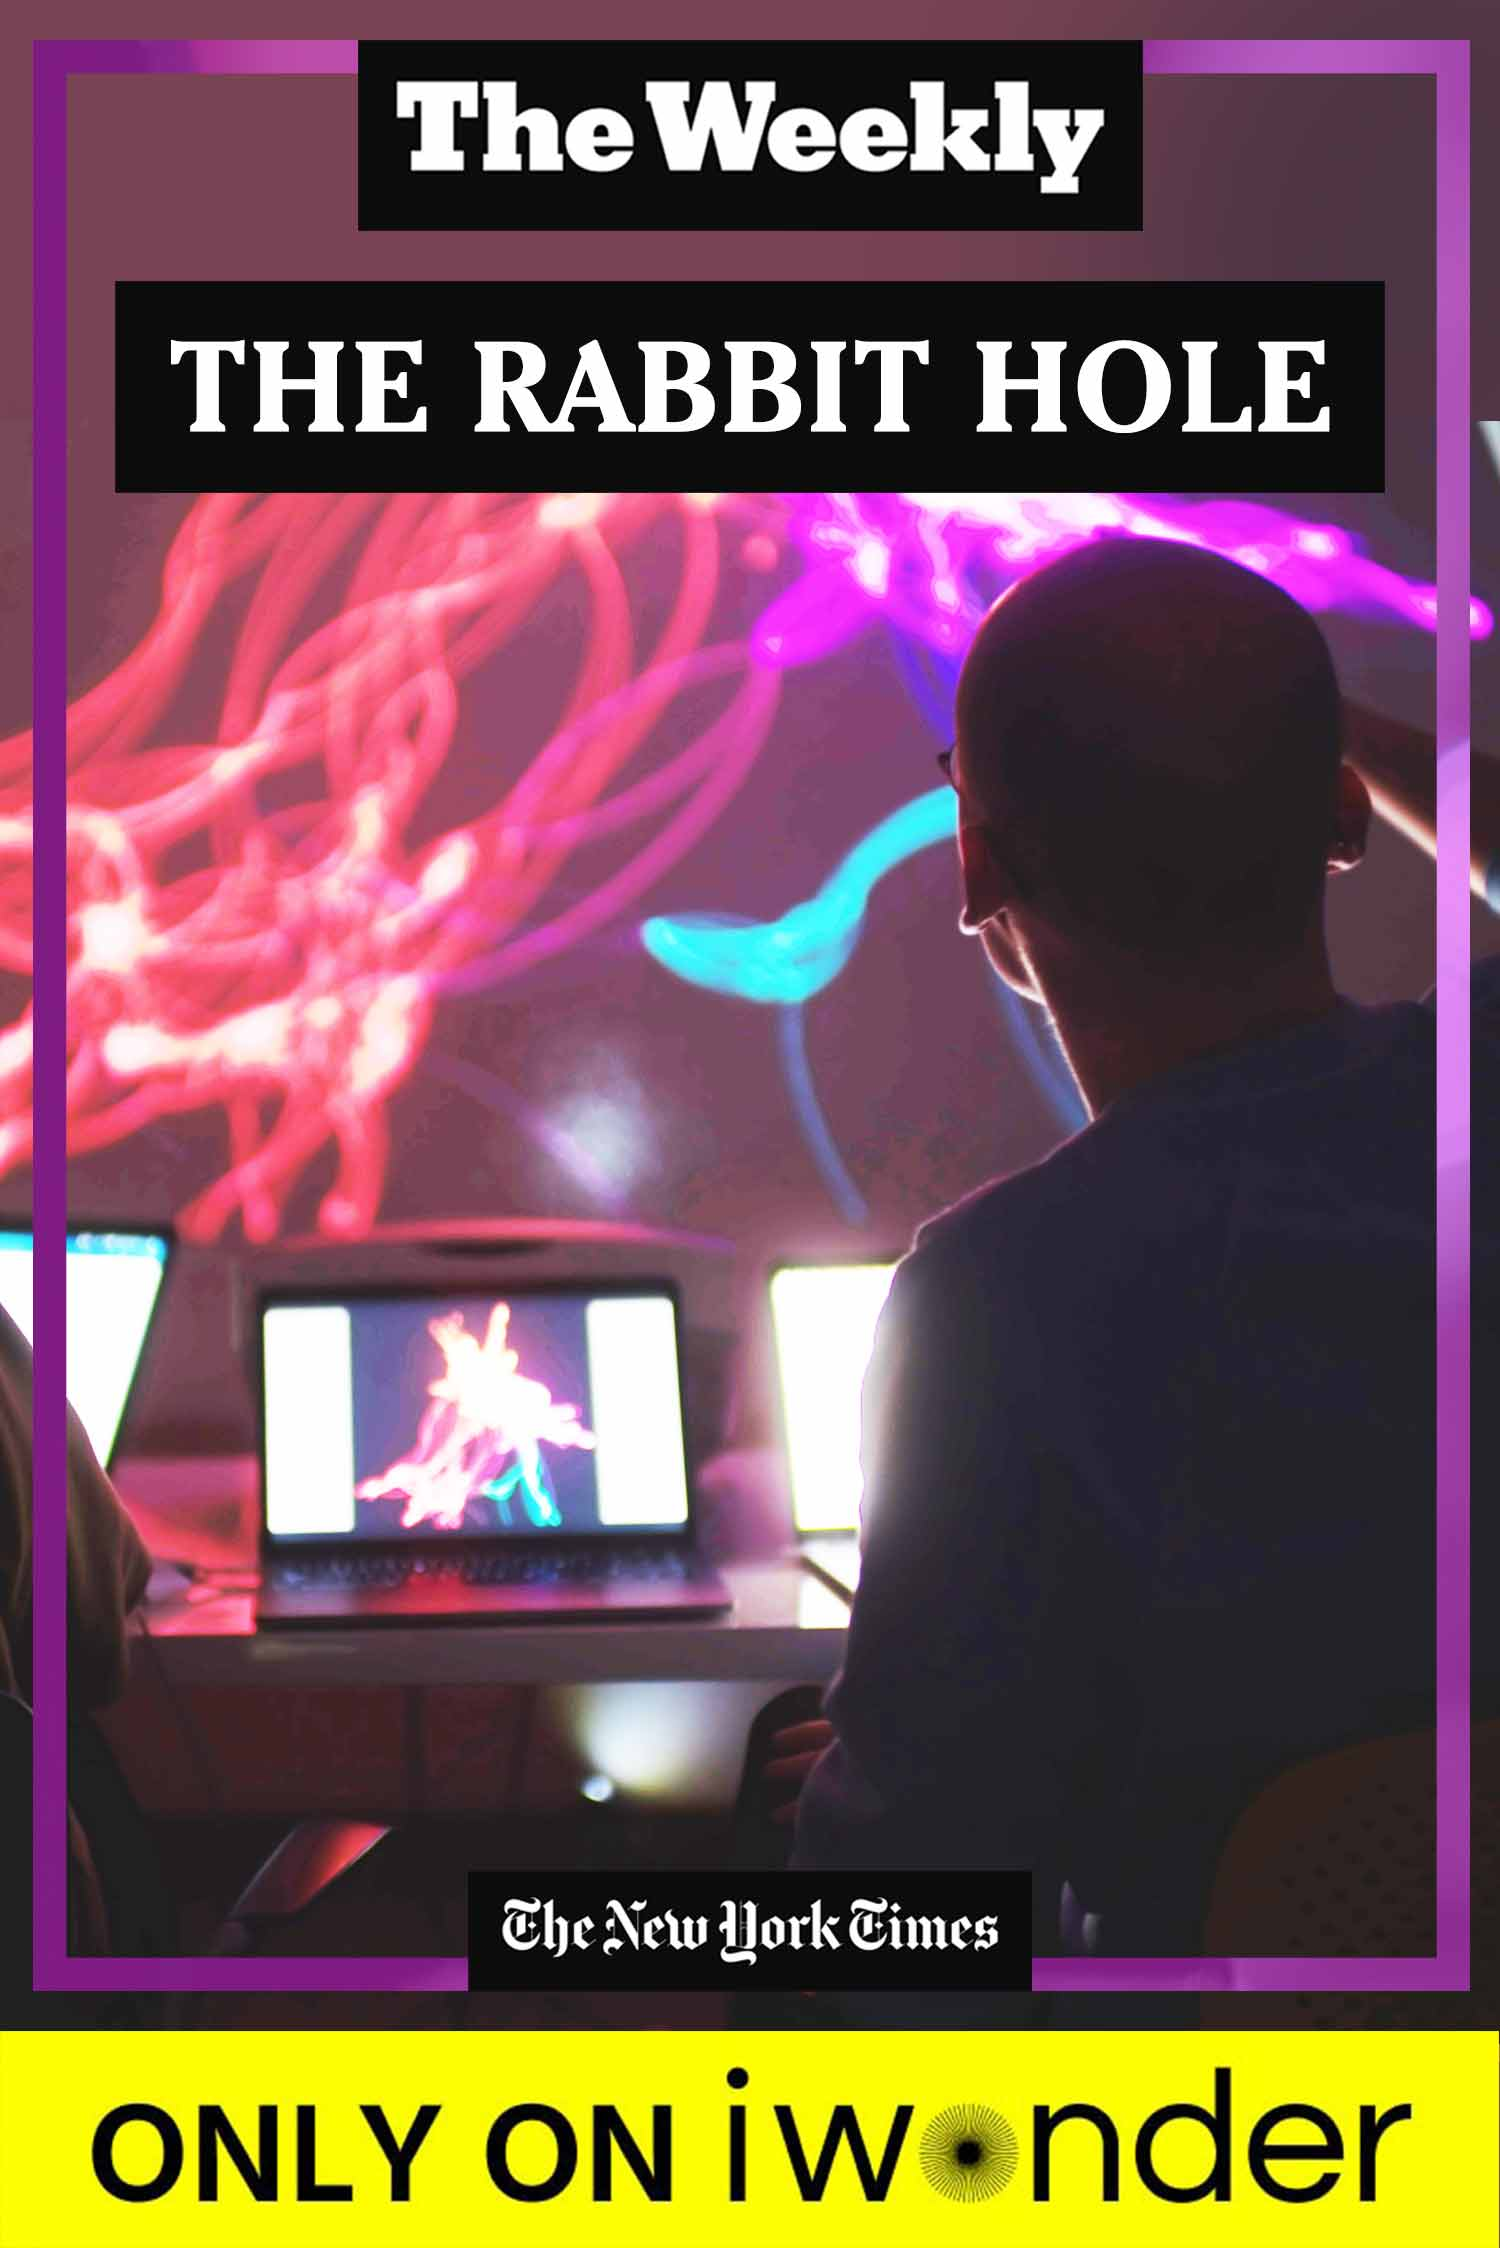 The Weekly: The Rabbit Hole